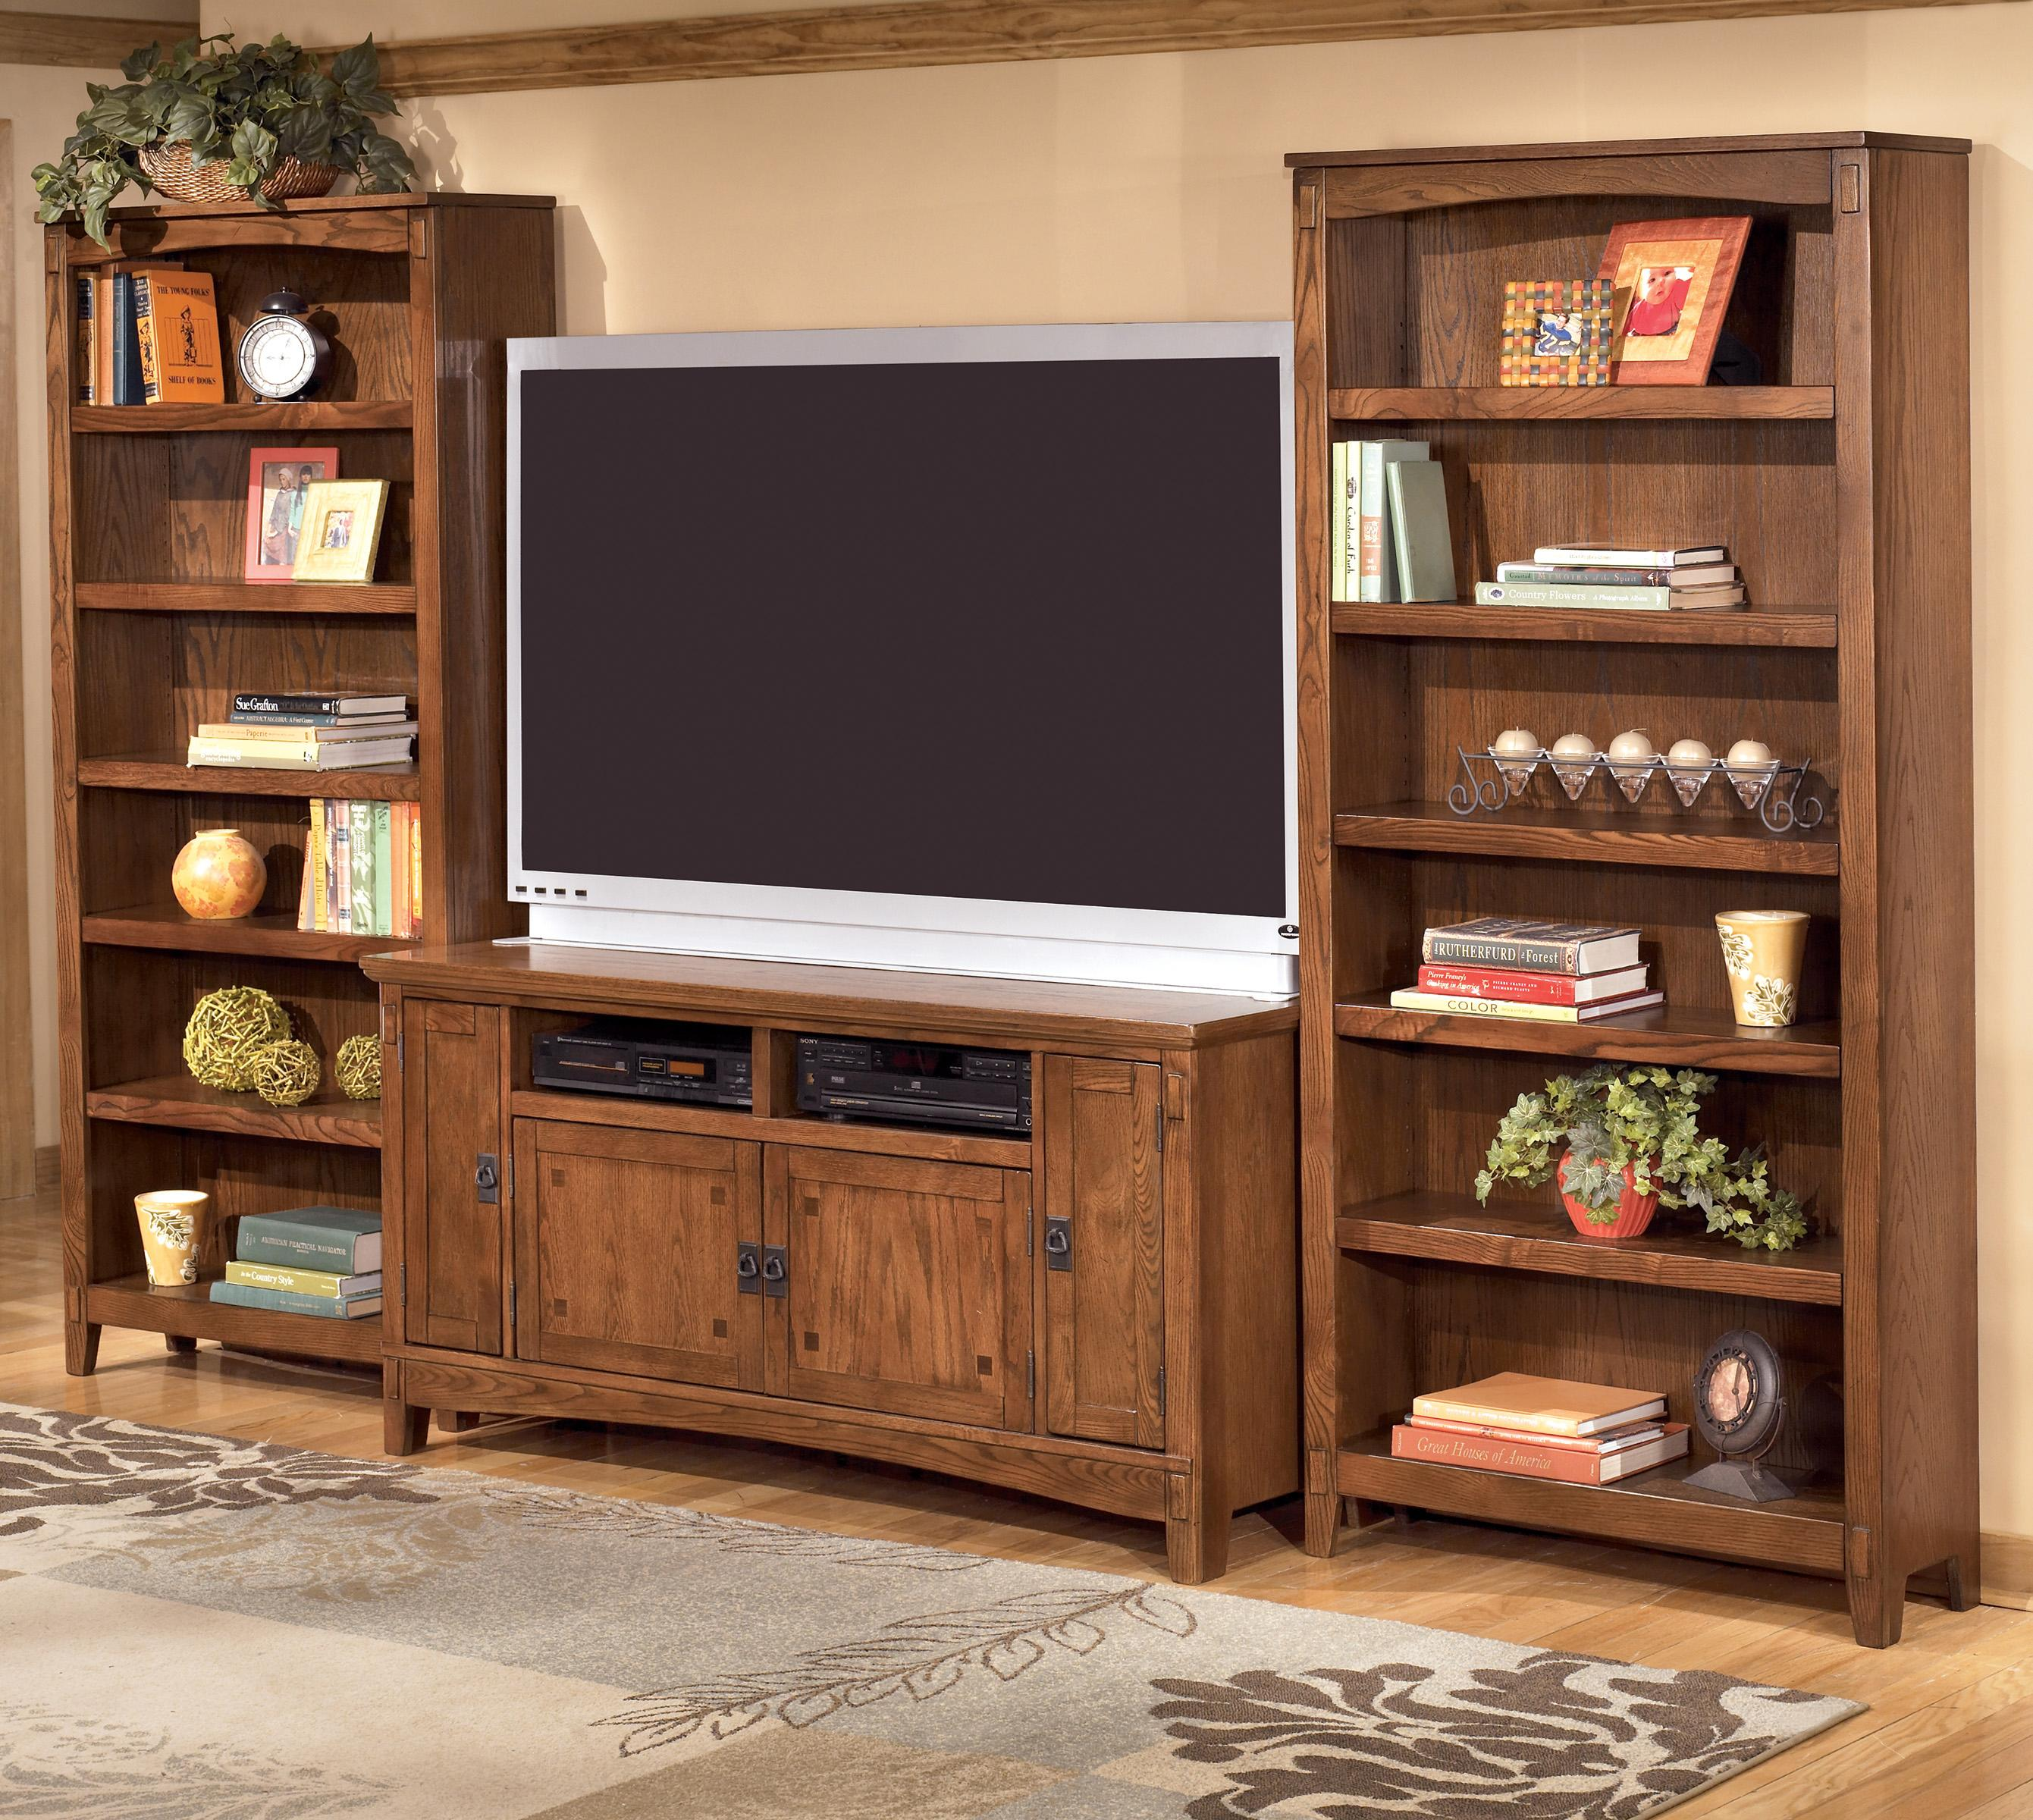 60 Inch Tv Stand 2 Large Bookcases By Ashley Furniture Wolf And